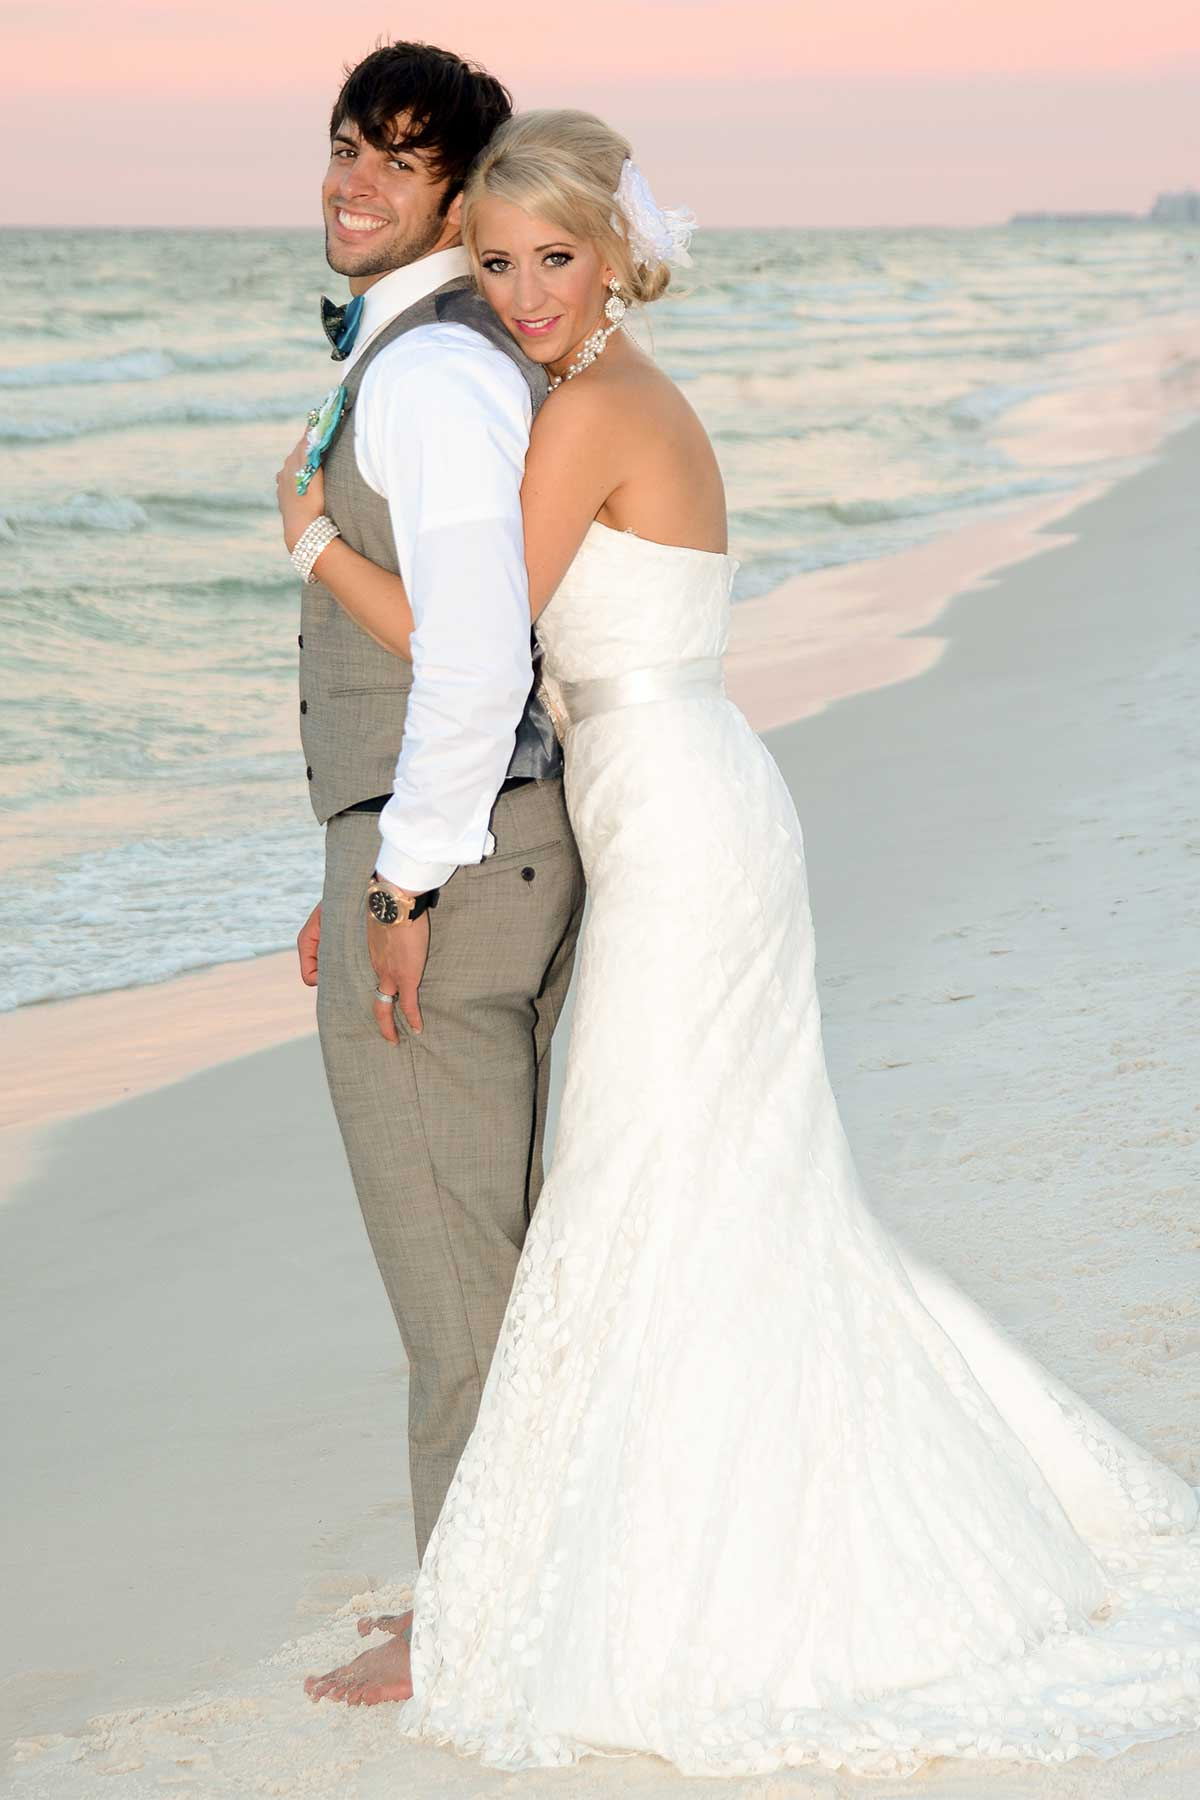 Our wedding photographers know lots of poses that will help make your photos look great.